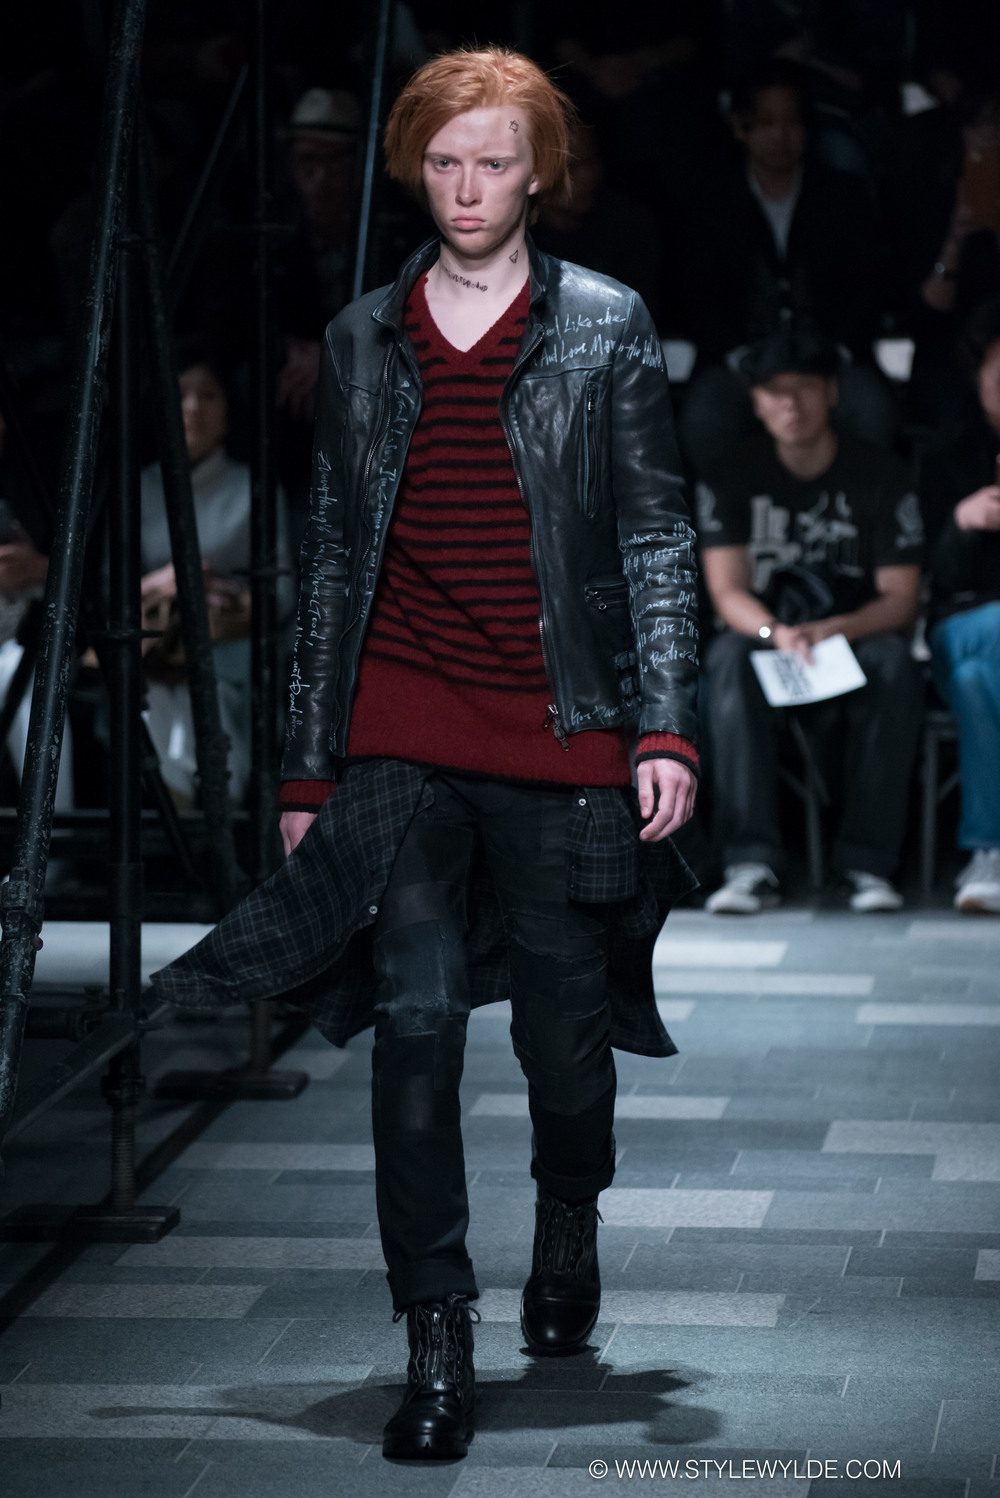 stylewylde_5351_pour_les_hommes_fw_2016-5.jpg